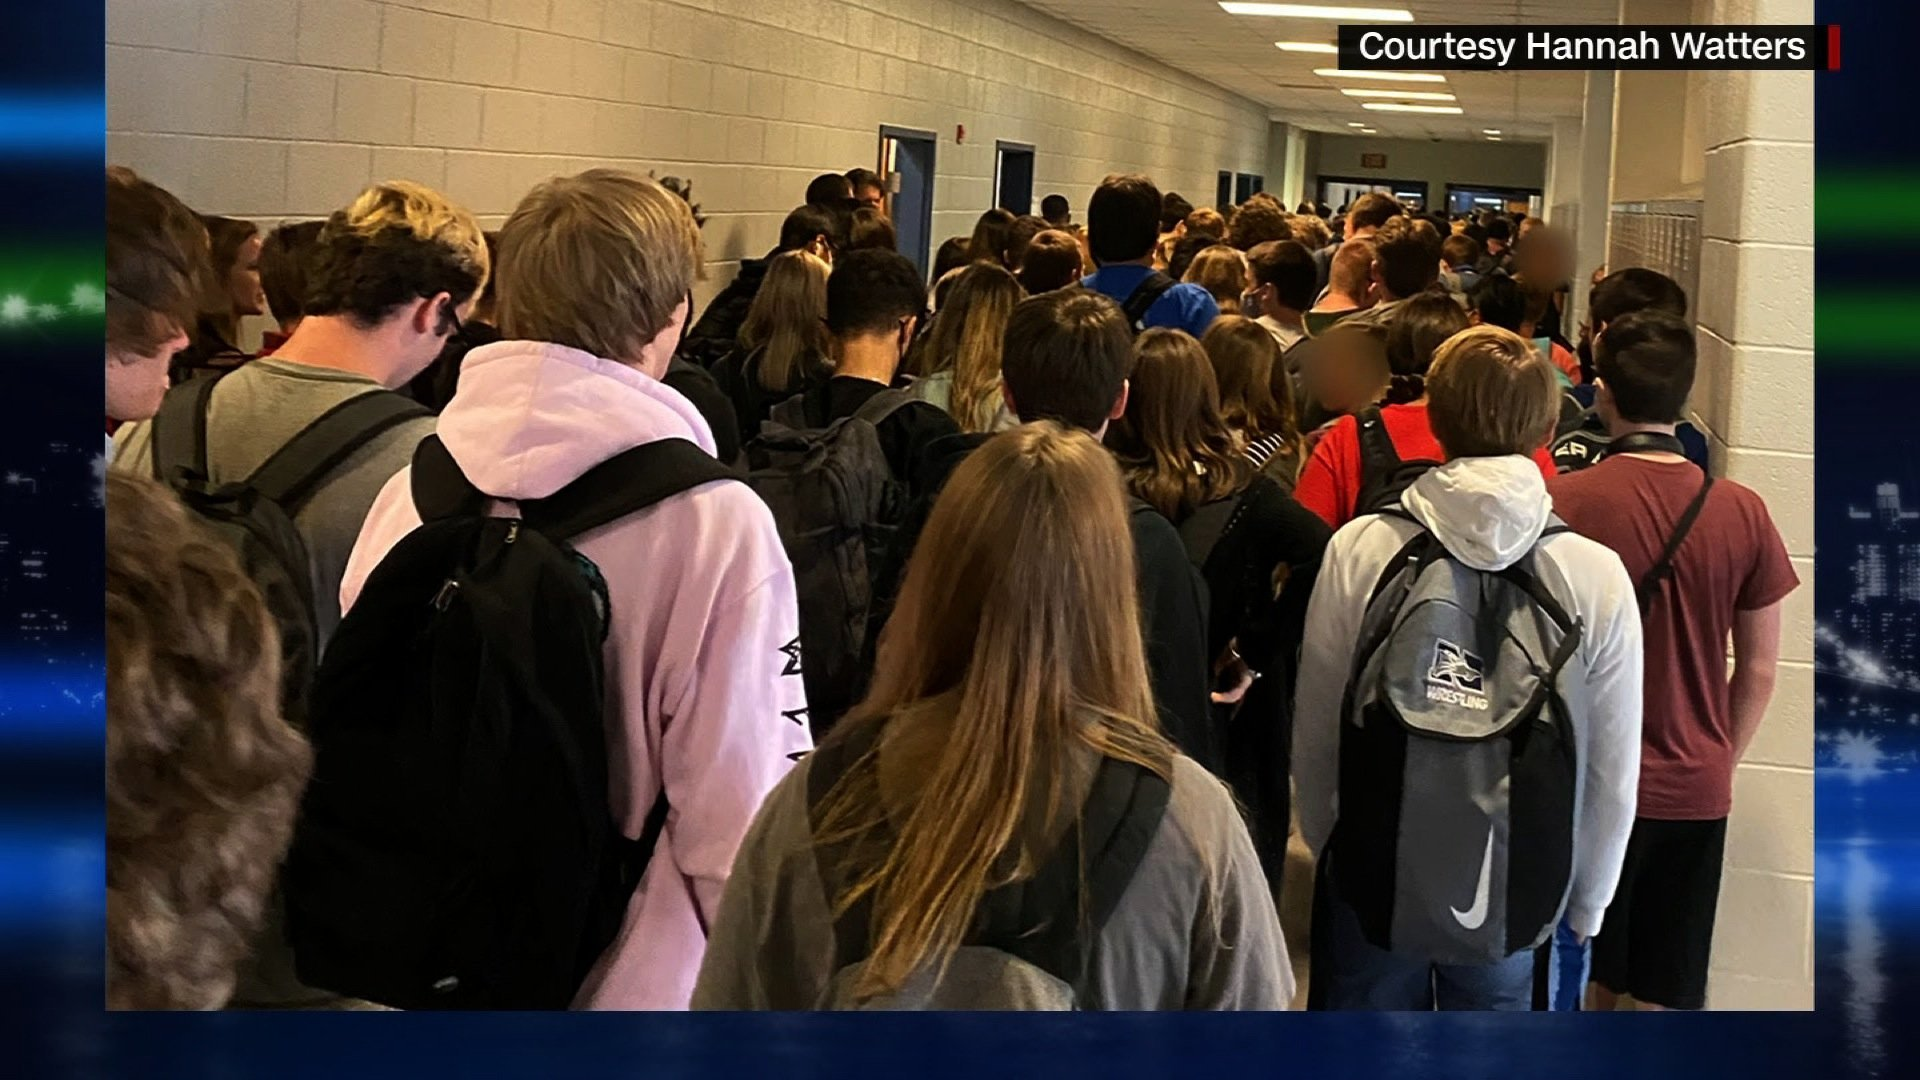 Georgia student who posted photo of a crowded school hallway and called it 'good and necessary trouble' is no longer suspended, her mom says